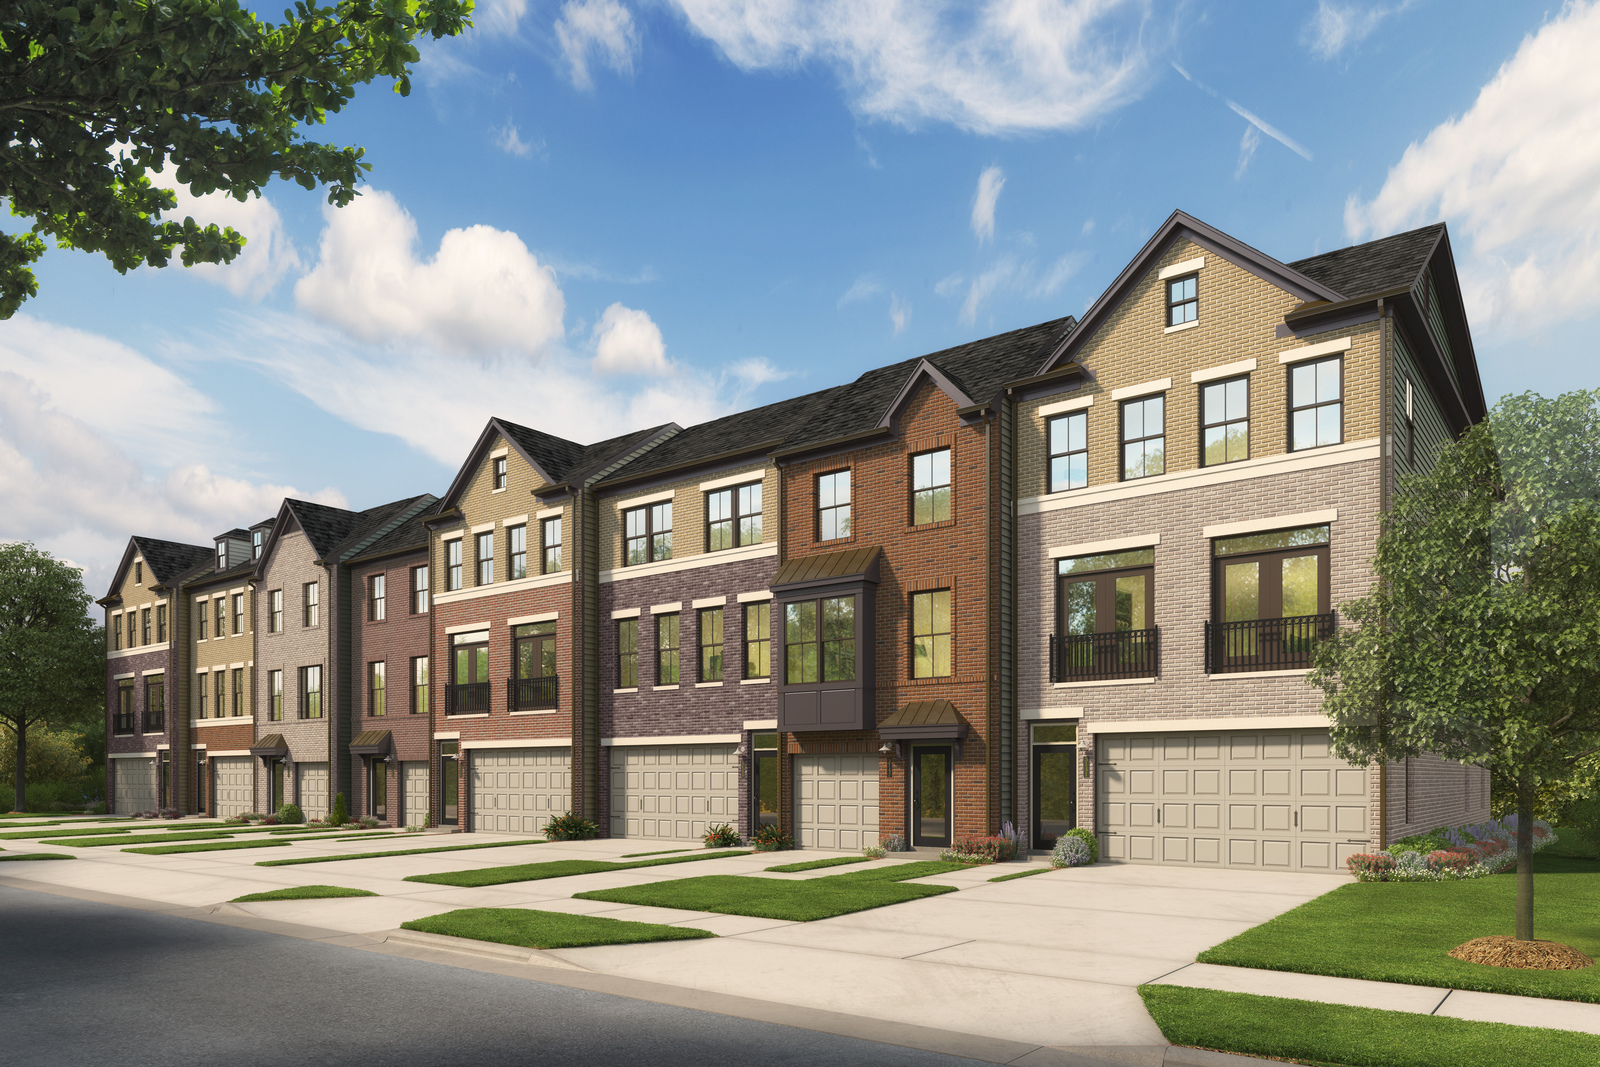 New Luxury Homes For Sale At Metro Row In Fairfax Va